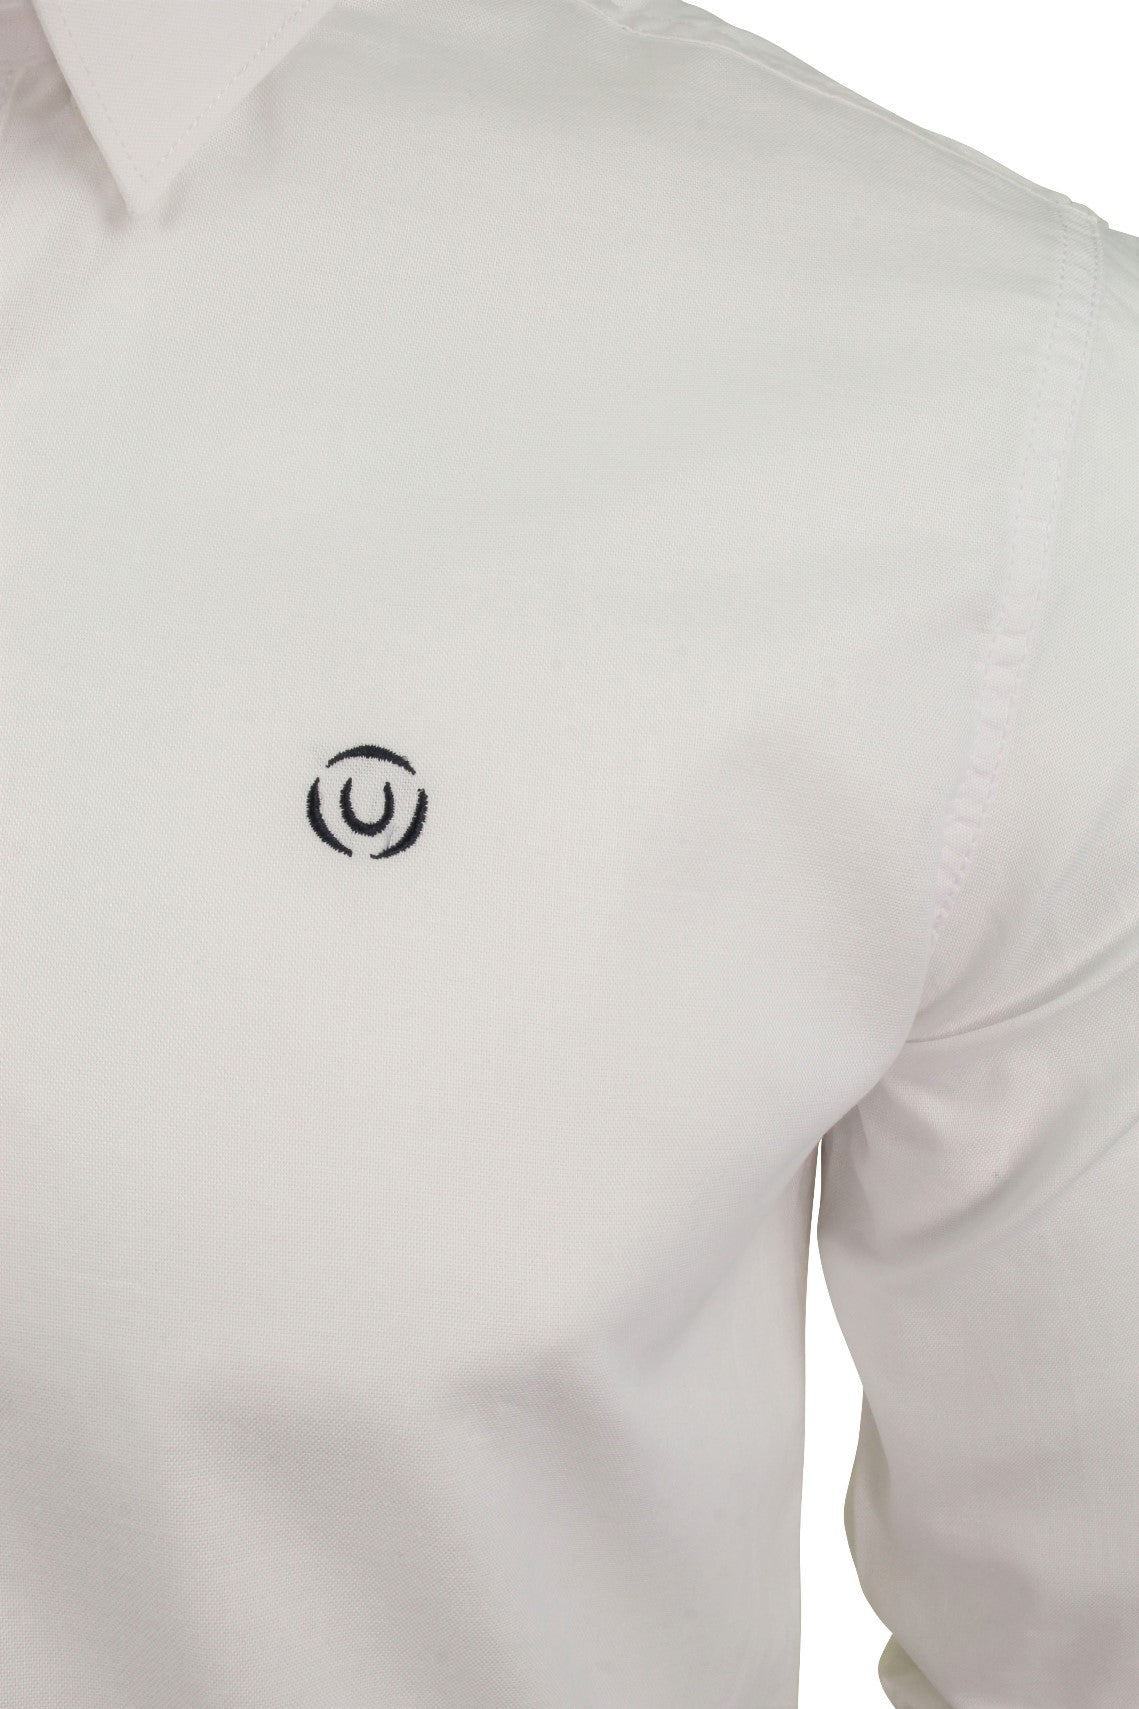 Mens Long Sleeved Shirt by Duck and Cover 'Birch'_02_Dc2G111535_White